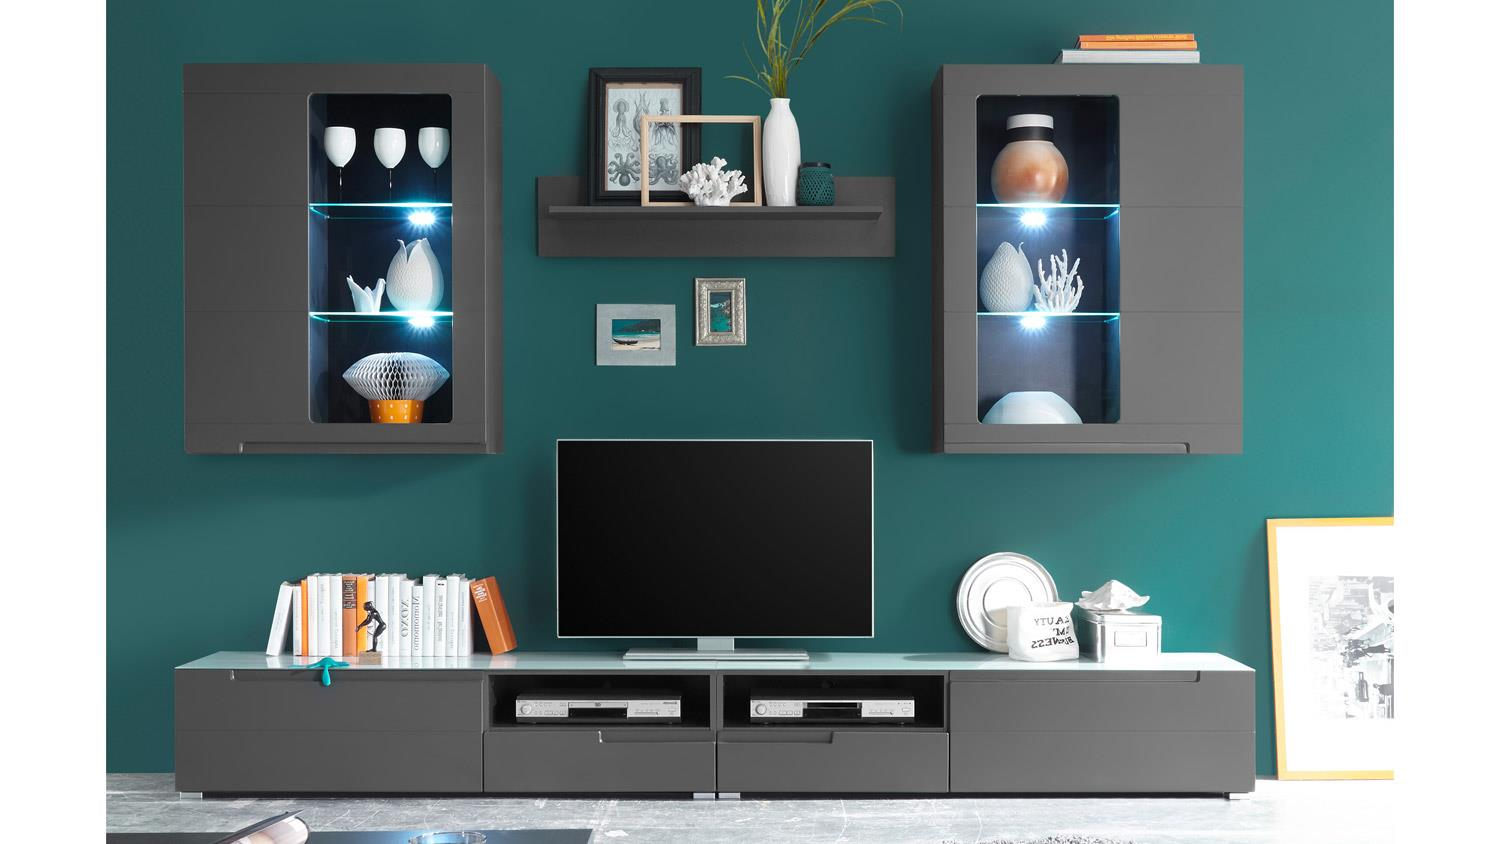 wohnwand tiga in mdf grau matt tiefzieh inkl led beleuchtung. Black Bedroom Furniture Sets. Home Design Ideas